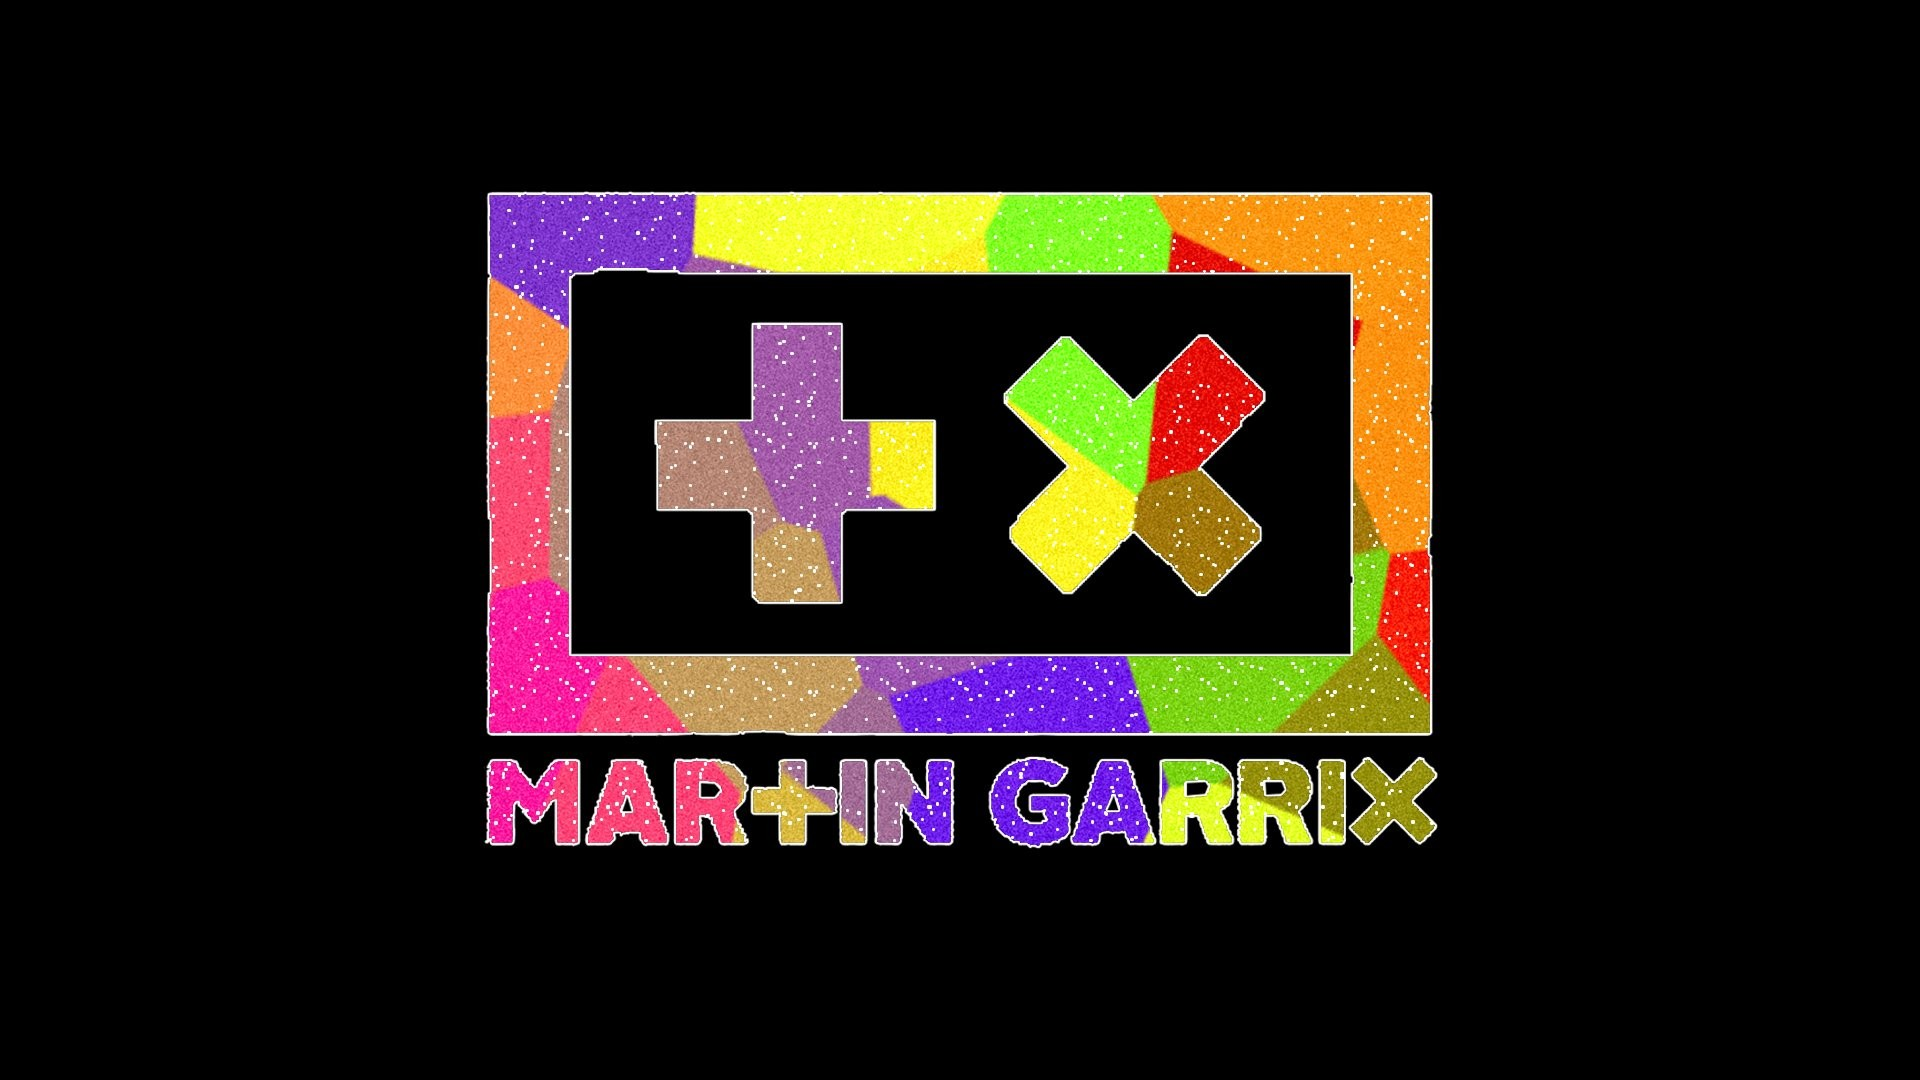 Martin Garrix Logo Wallpapers 67 Pictures